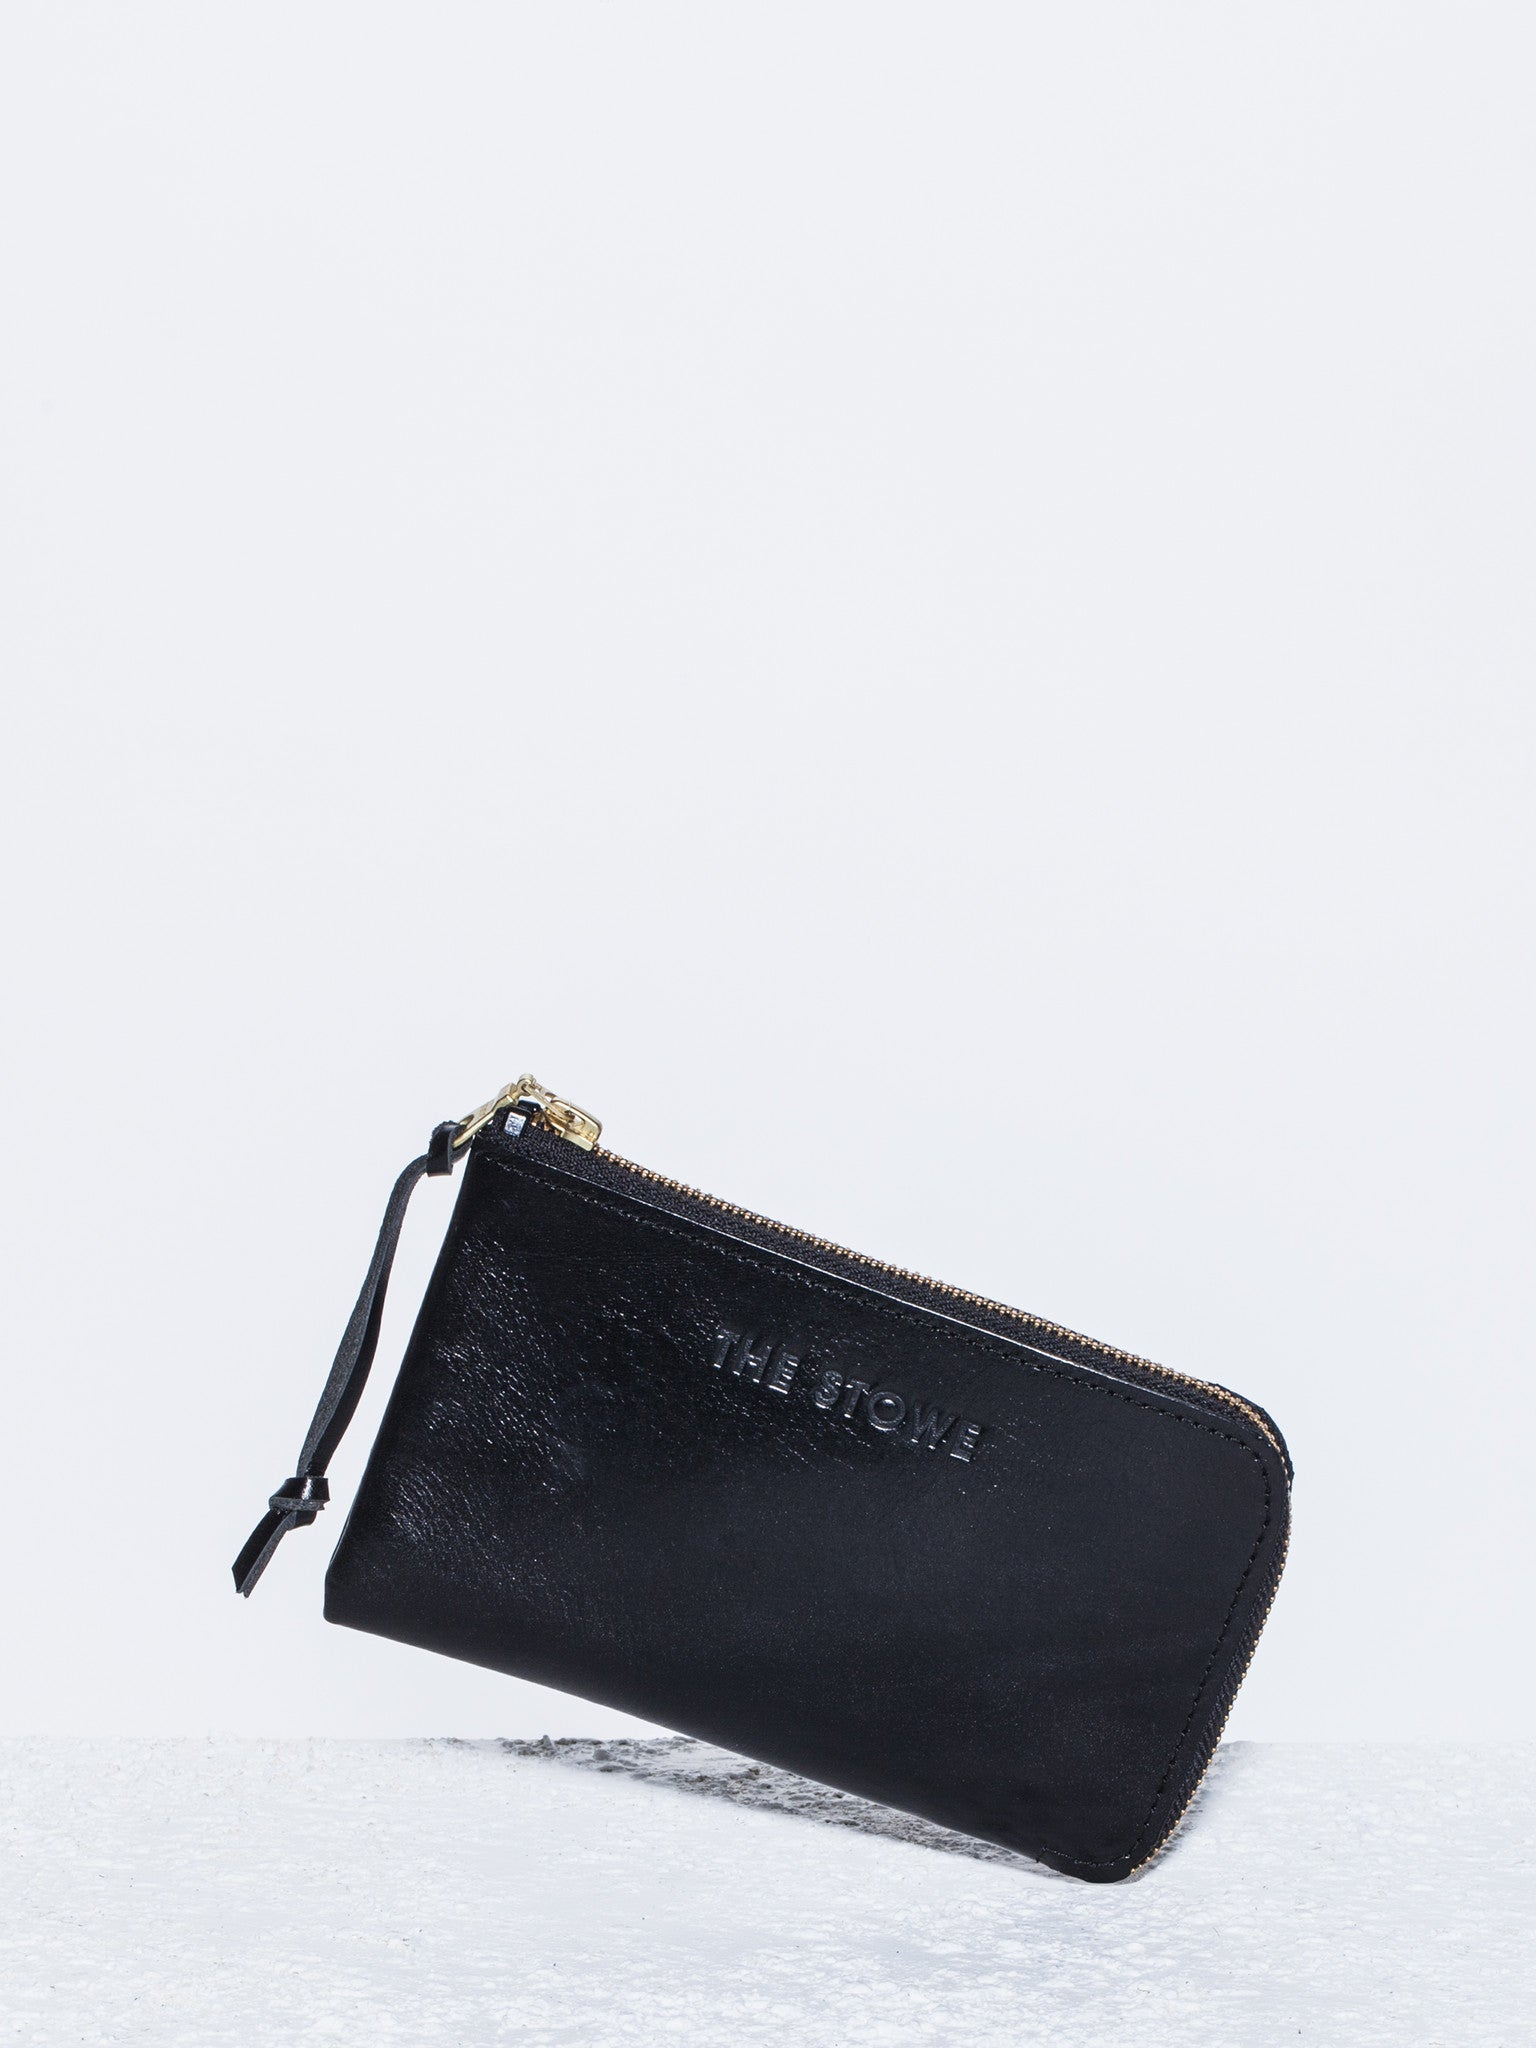 The Stowe Zip Wallet Leather